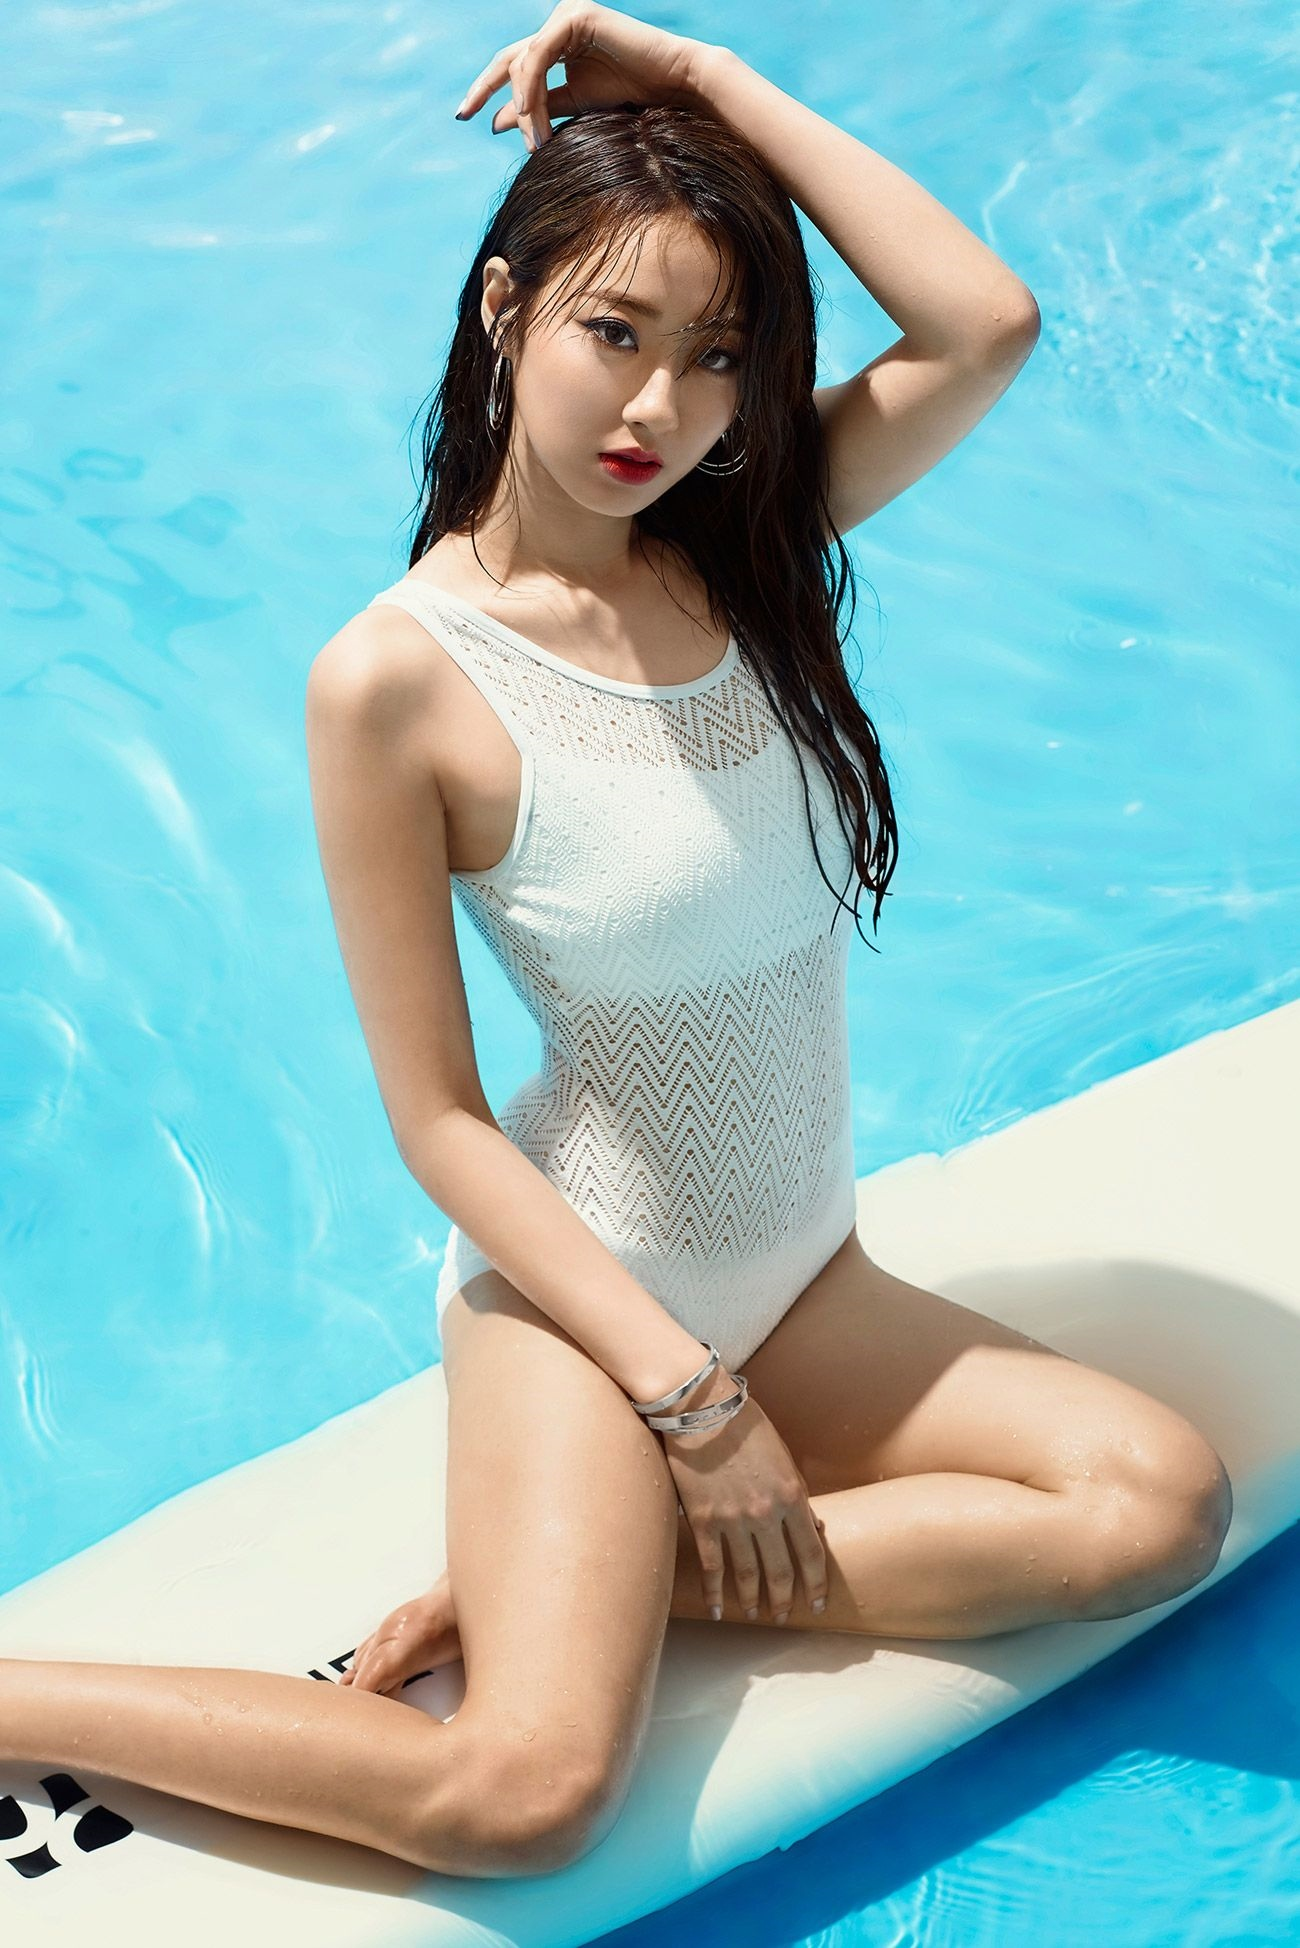 Kyungri Born in 1990